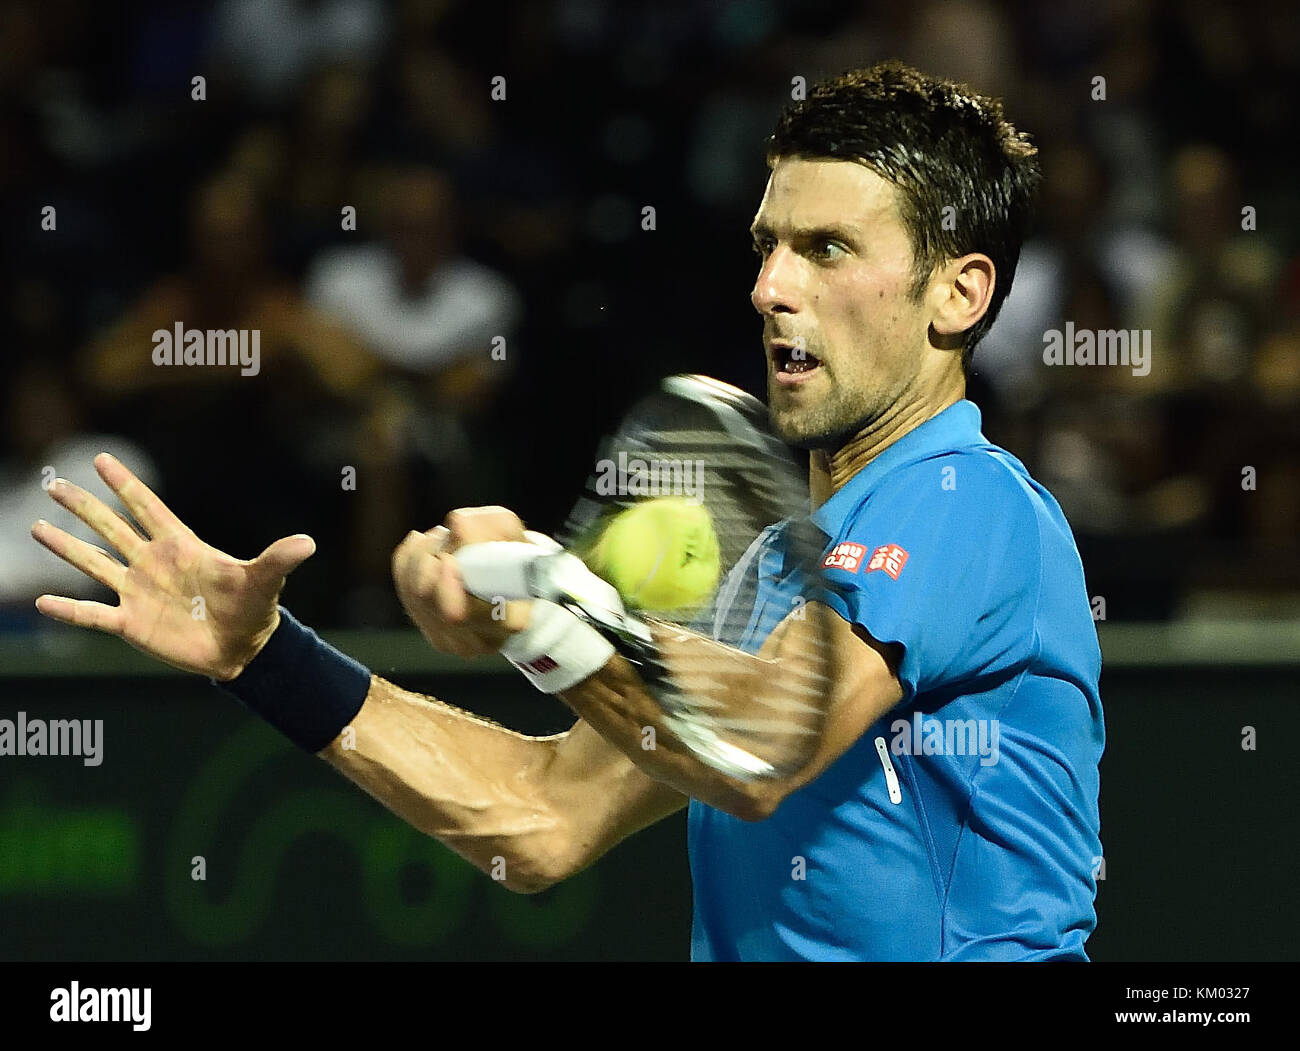 KEY BISCAYNE, FL - MARCH 25: Novak Djokovic at the Miami Open Day 6 at Crandon Park Tennis Center on March 25, 2016 - Stock Image